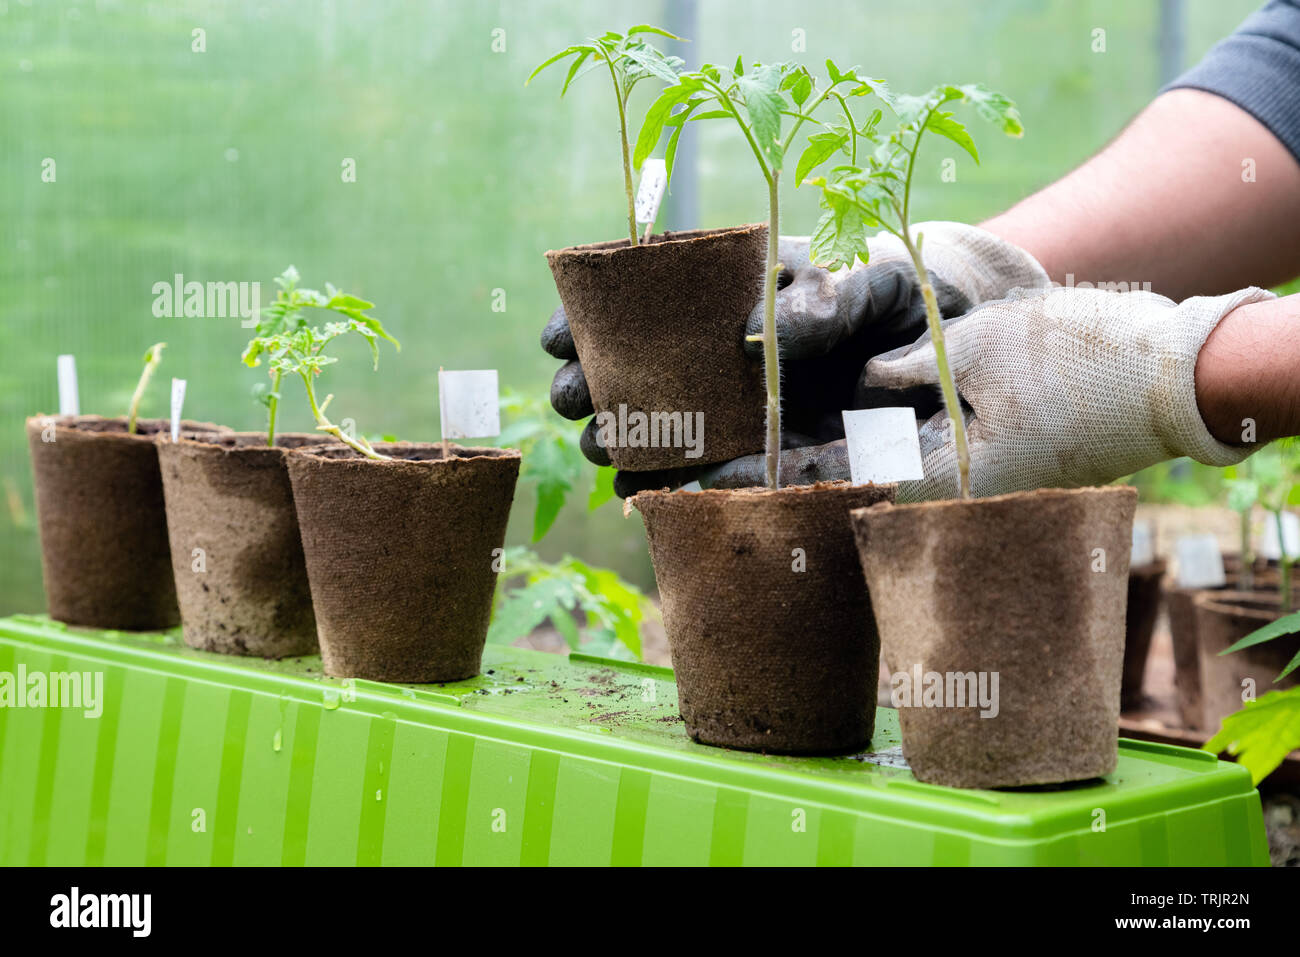 Male farmer holding organic pot with tomato plant before planting in into the soil. Man prepares to plant little tomato plant into ground Stock Photo